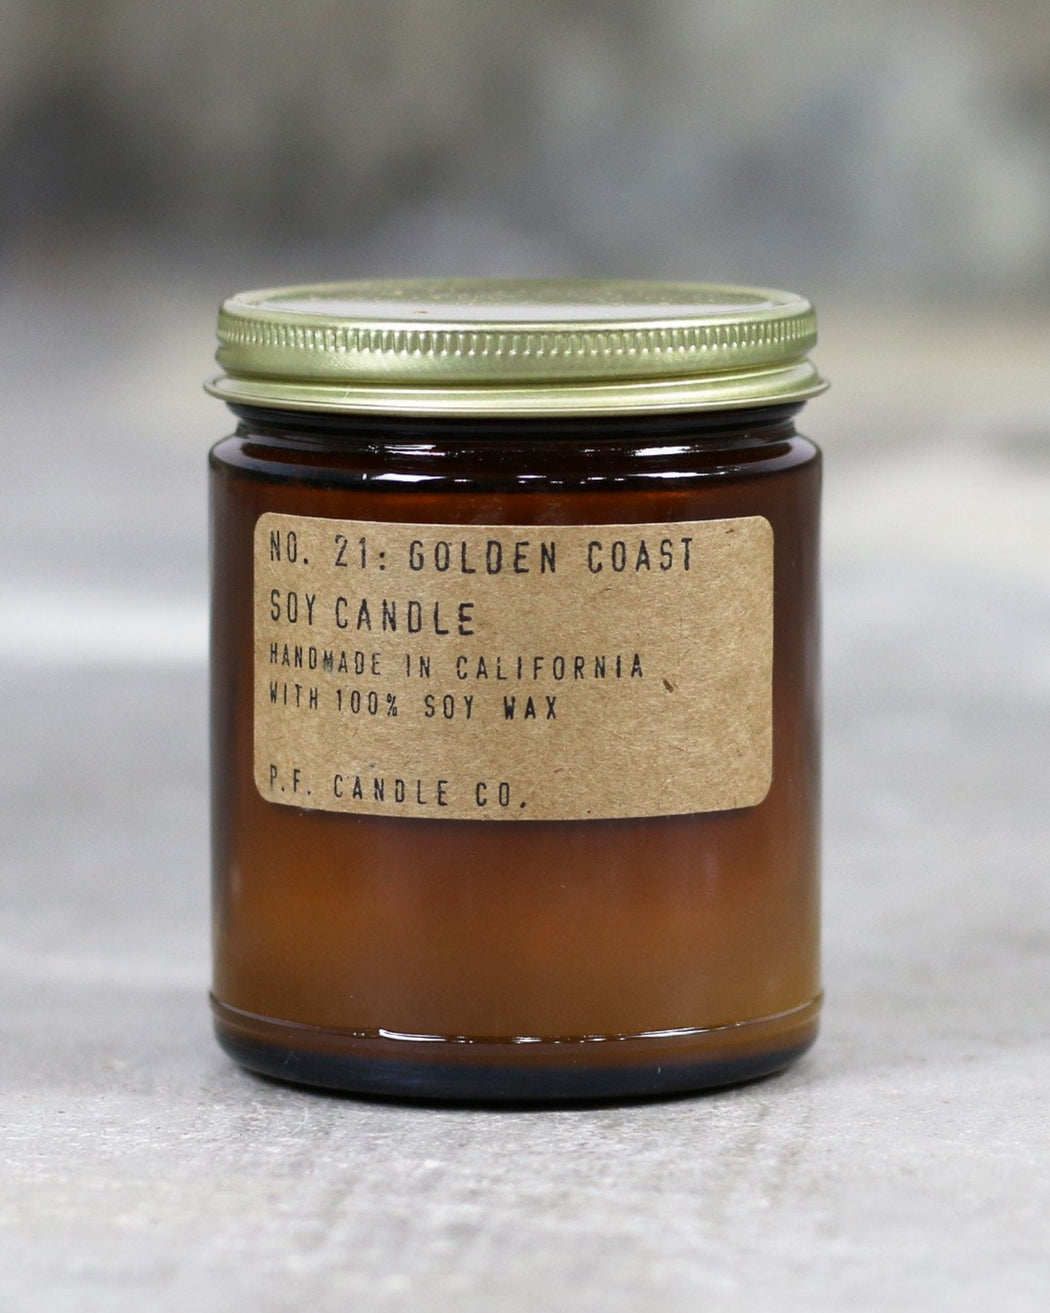 P.F. Candle Co.:Golden Coast – Candle,ANOMIE